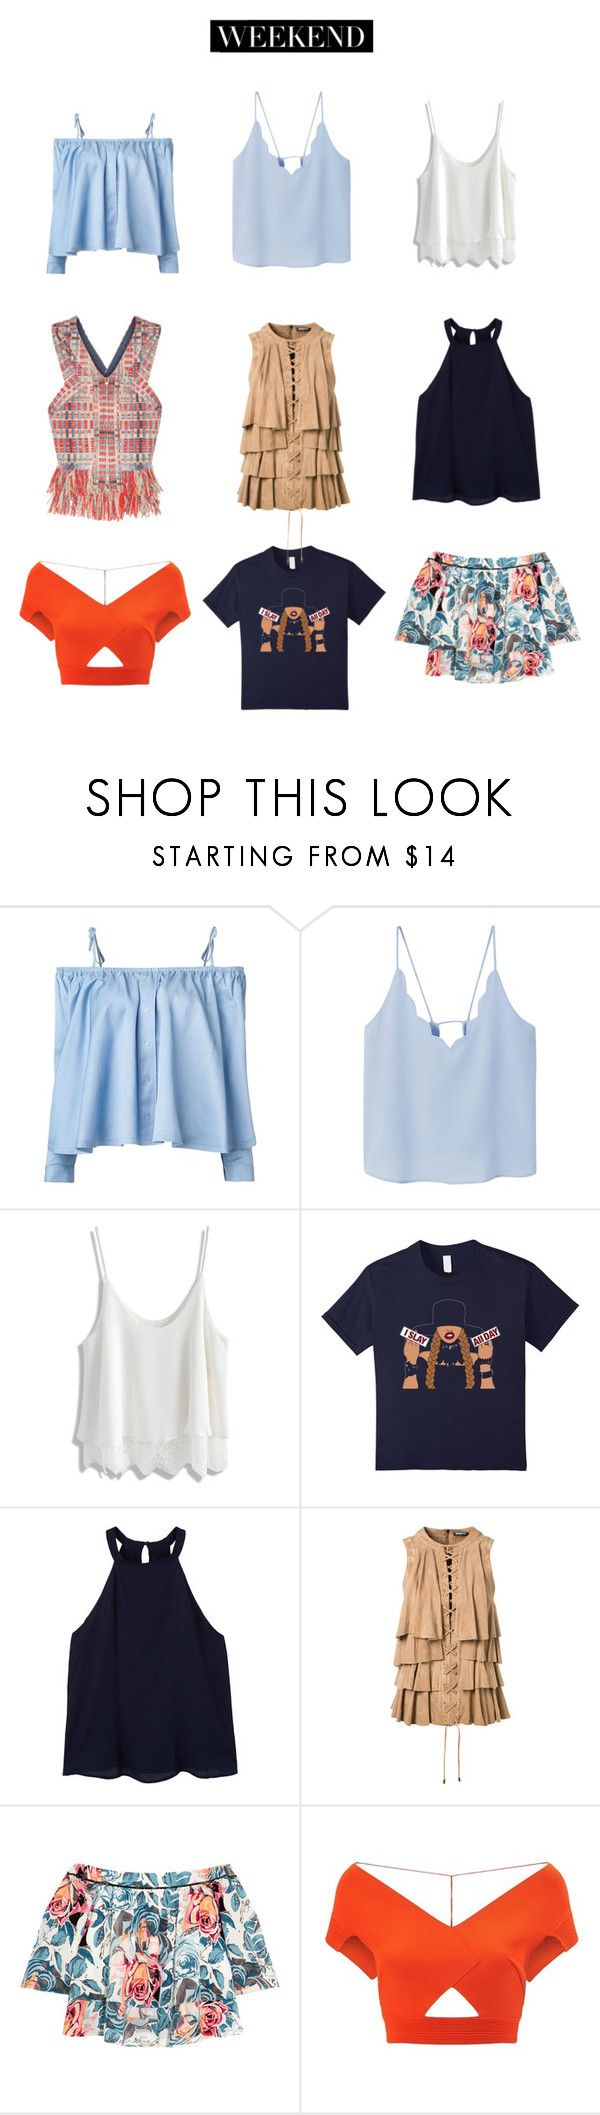 """""""Tops for the Weekend"""" by milanopradalover ❤ liked on Polyvore featuring Sandy Liang, MANGO, Chicwish, Balmain, Elizabeth and James, Roland Mouret and Tory Burch"""